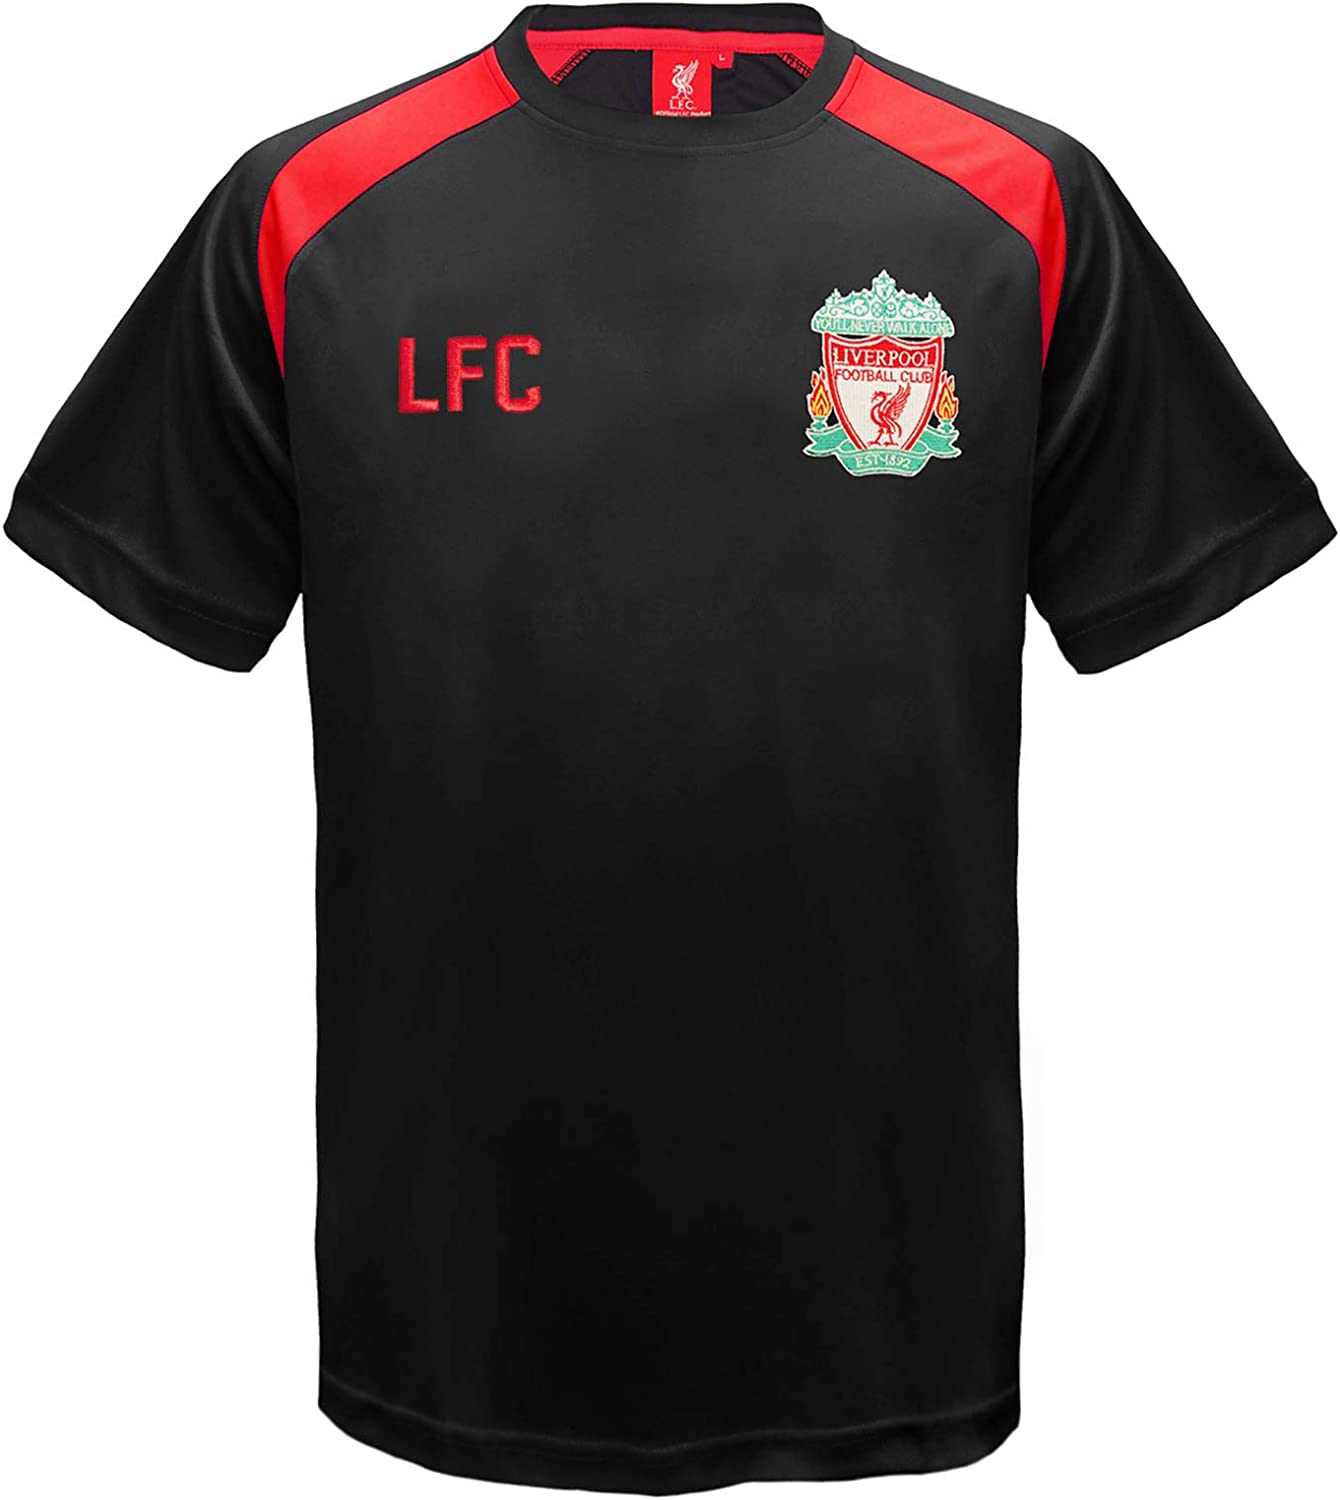 Icon Sports Men Liverpool Custom Name /& Number Soccer T-Shirt Cotton Tee 01 Large